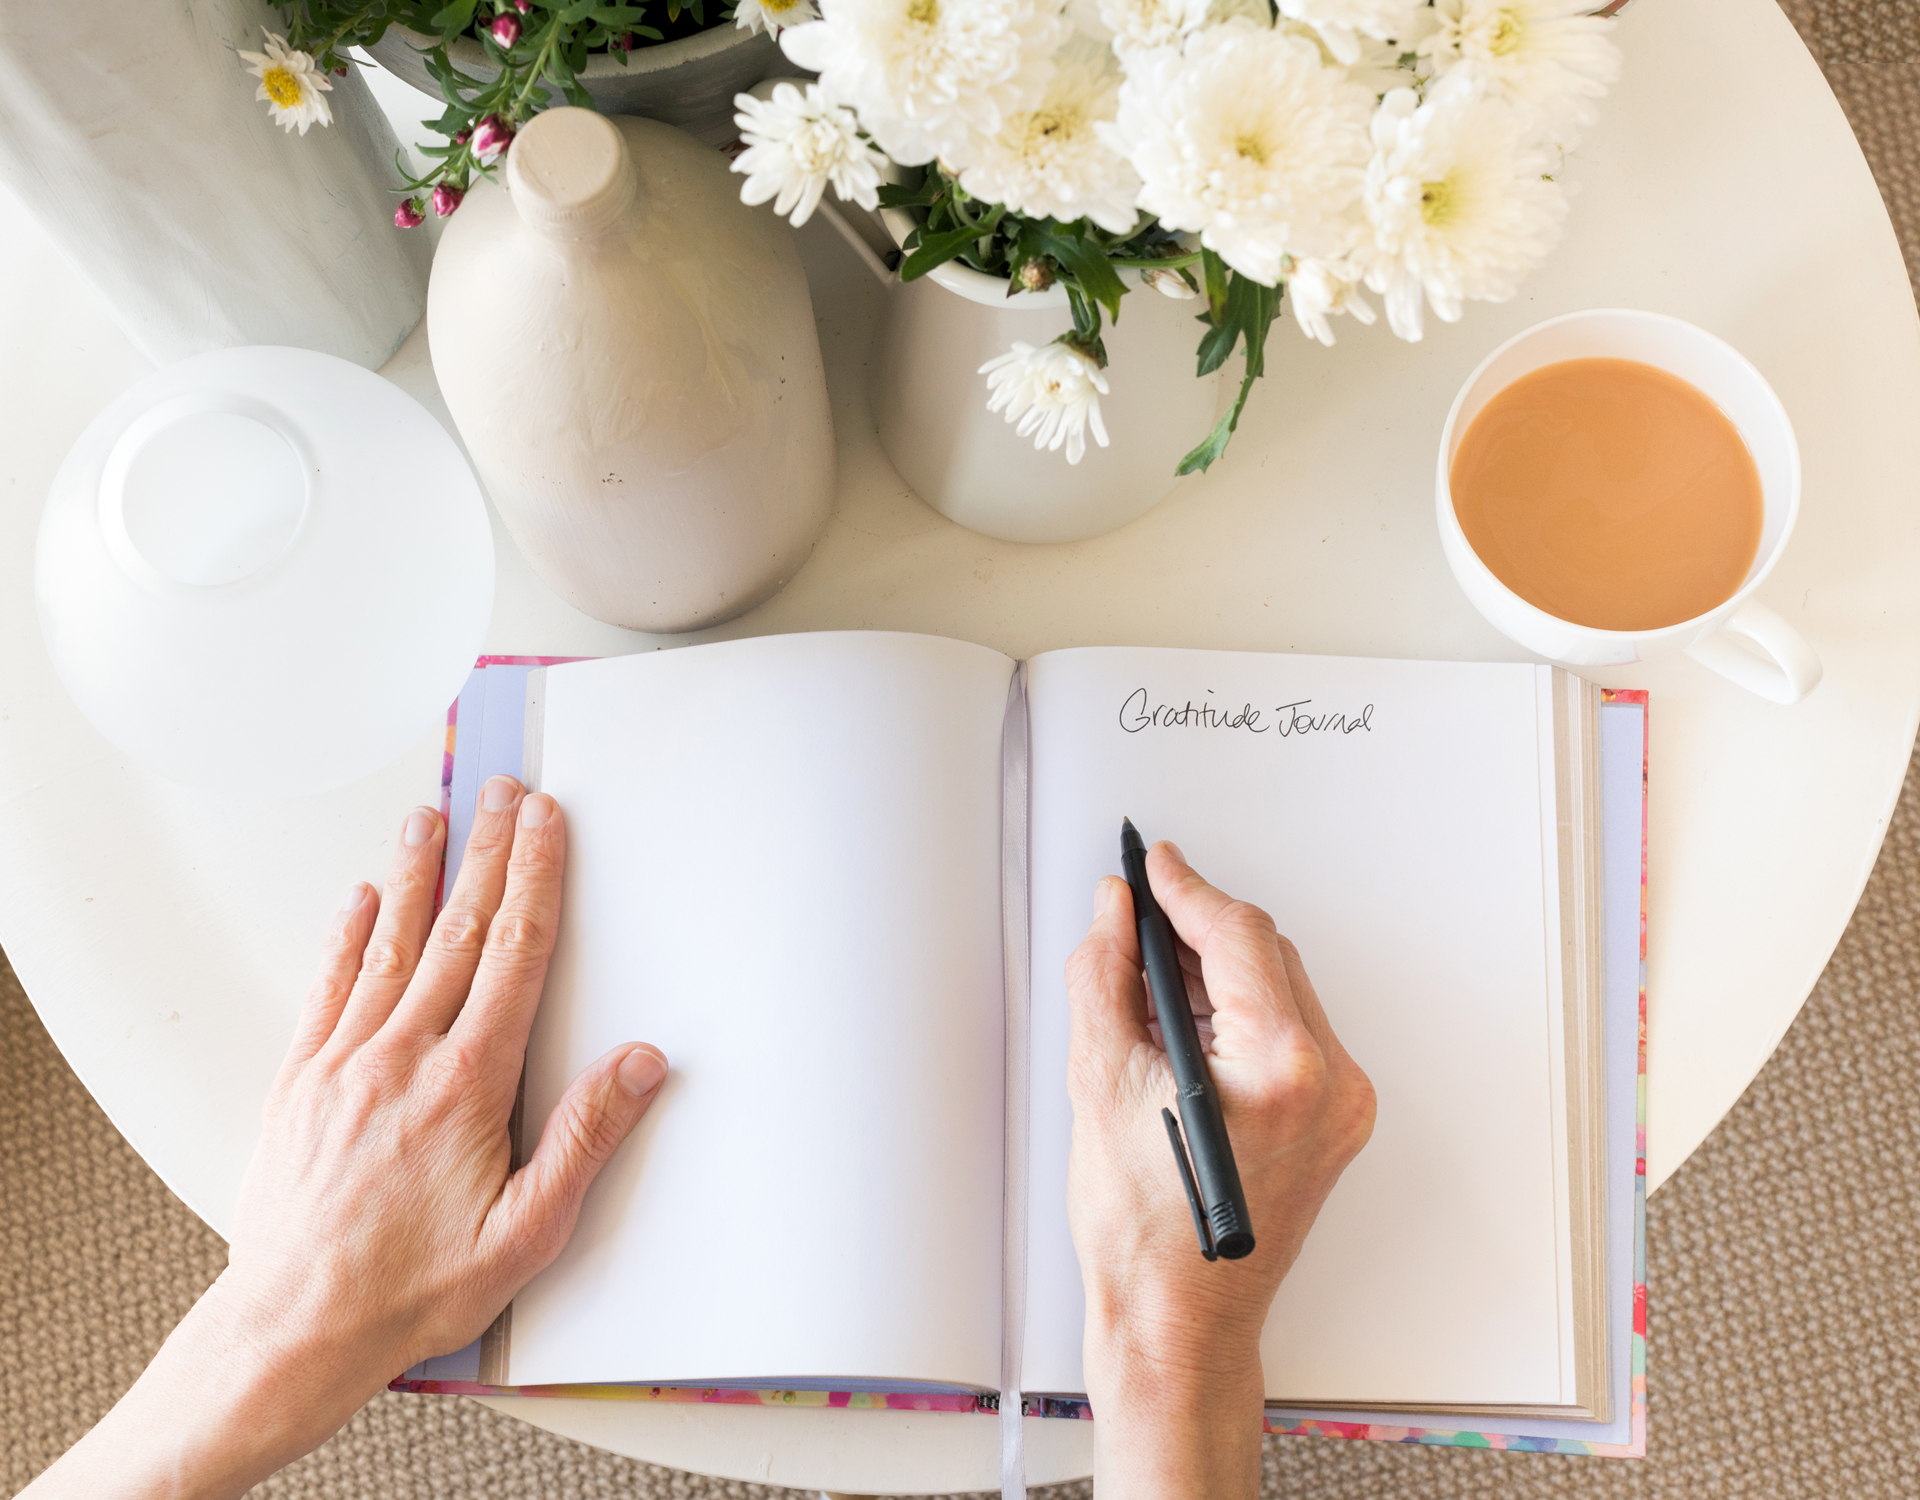 hands writing in journal on table with coffee cup and flowers